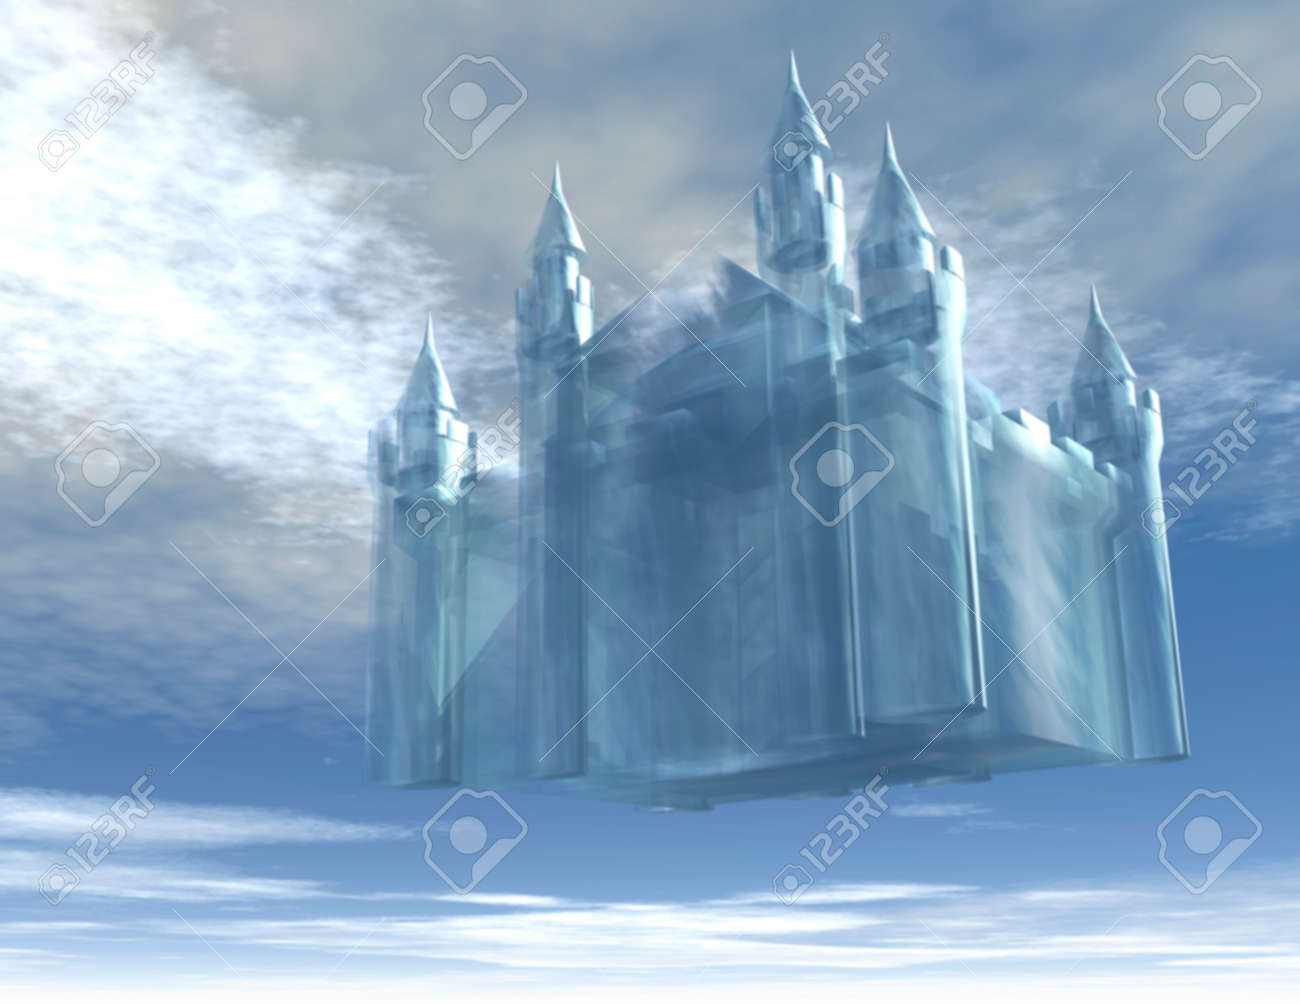 Illustration of a Castle in the Air - 25779701